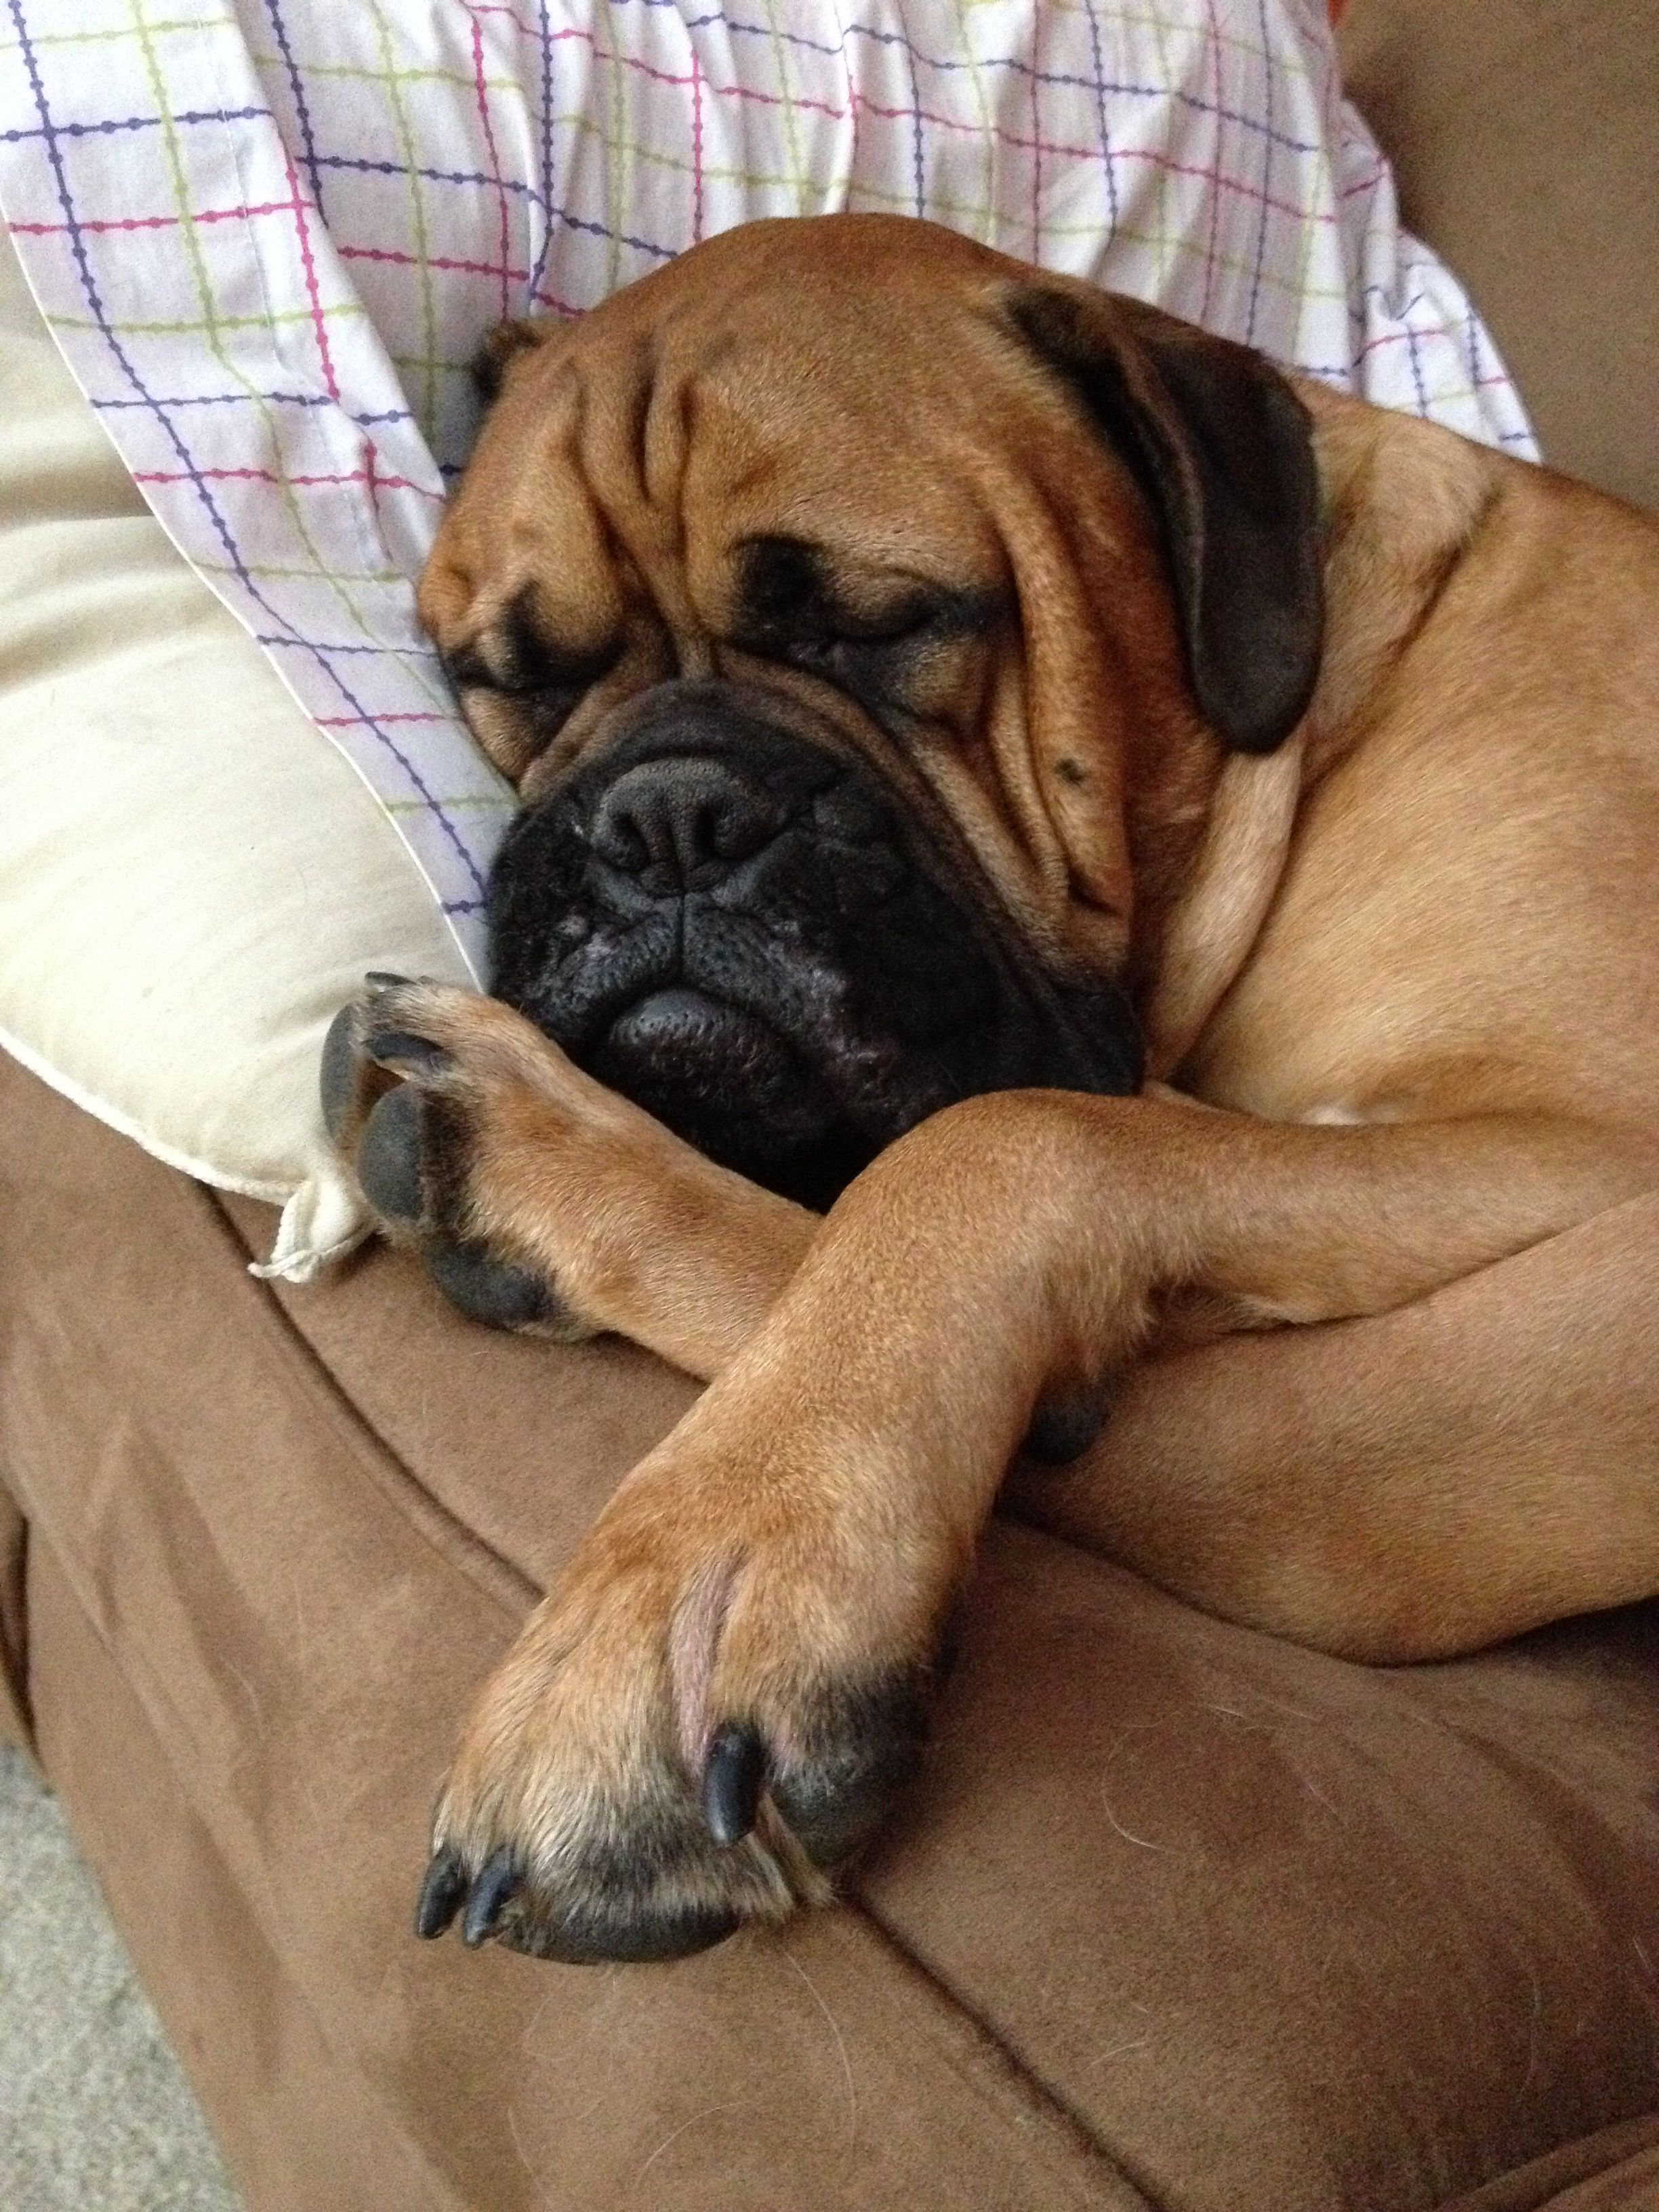 Beauty Like His Takes Many Hours Of Sleep Bullmastiff Bull Mastiff Mastiff Dogs Mastiff Breeds